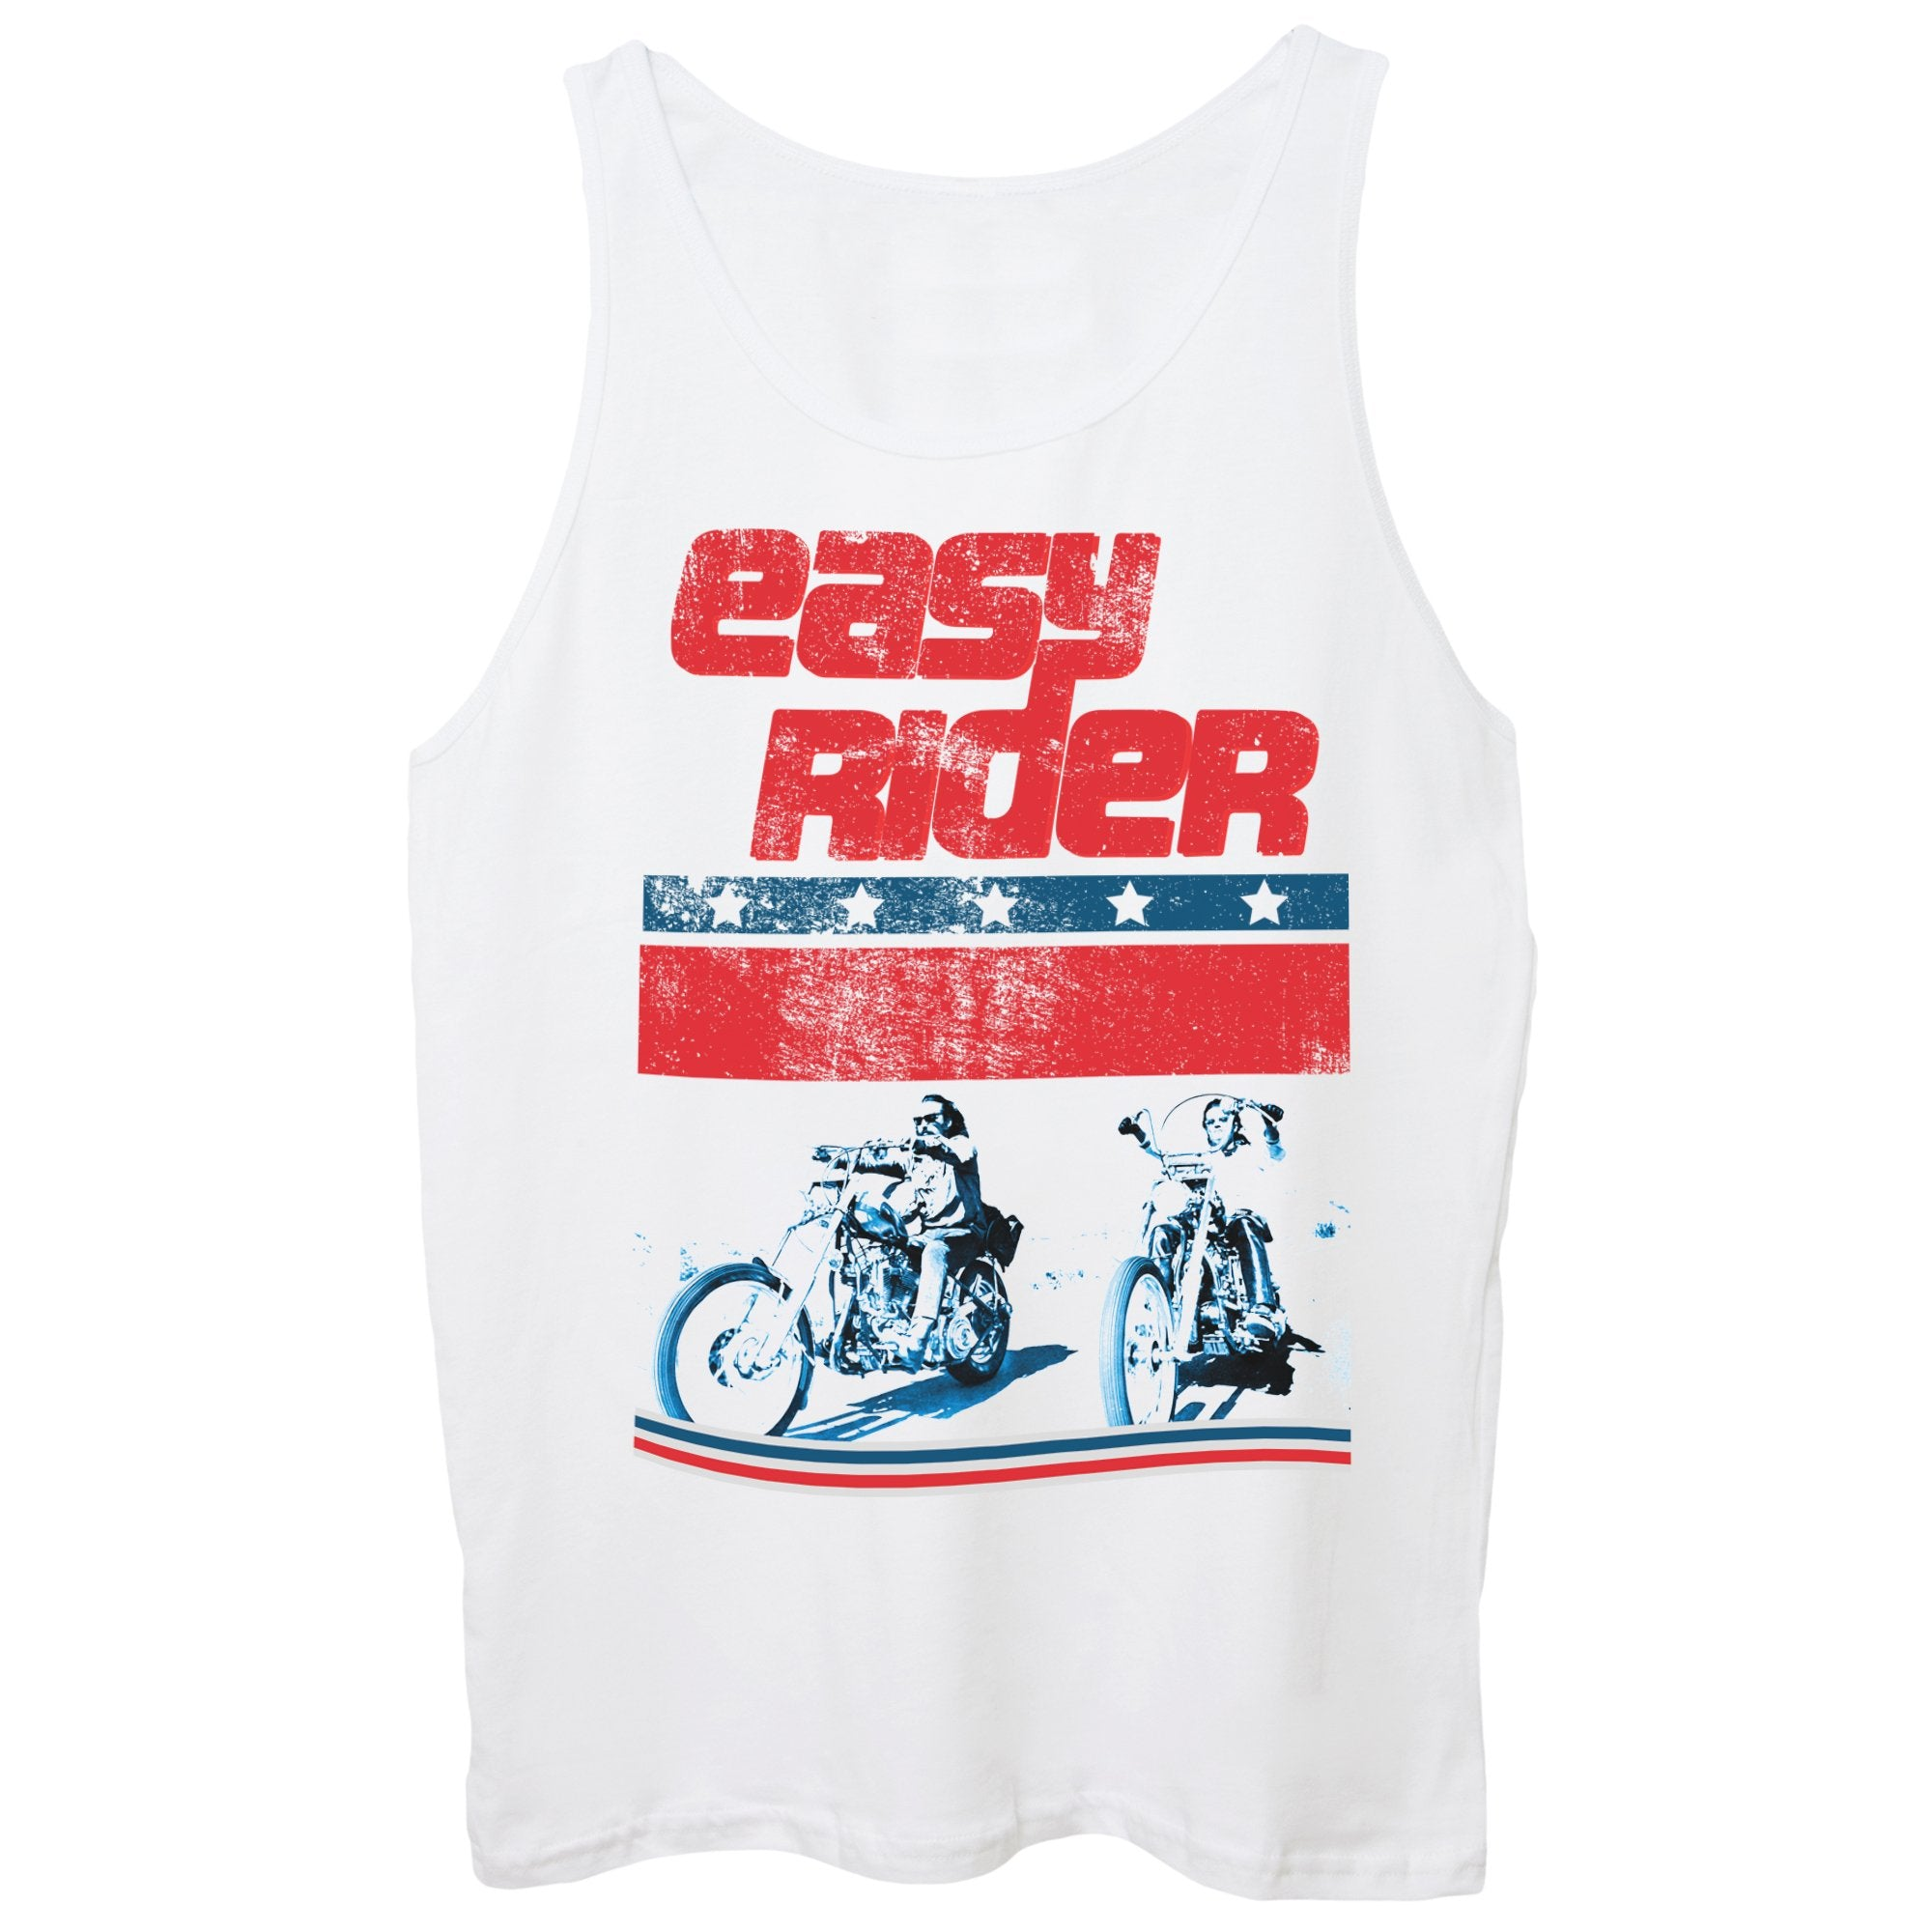 Canotta Easy Rider Road Movie Motorcycle Biker Gang - FILM - CUC #chooseurcolor